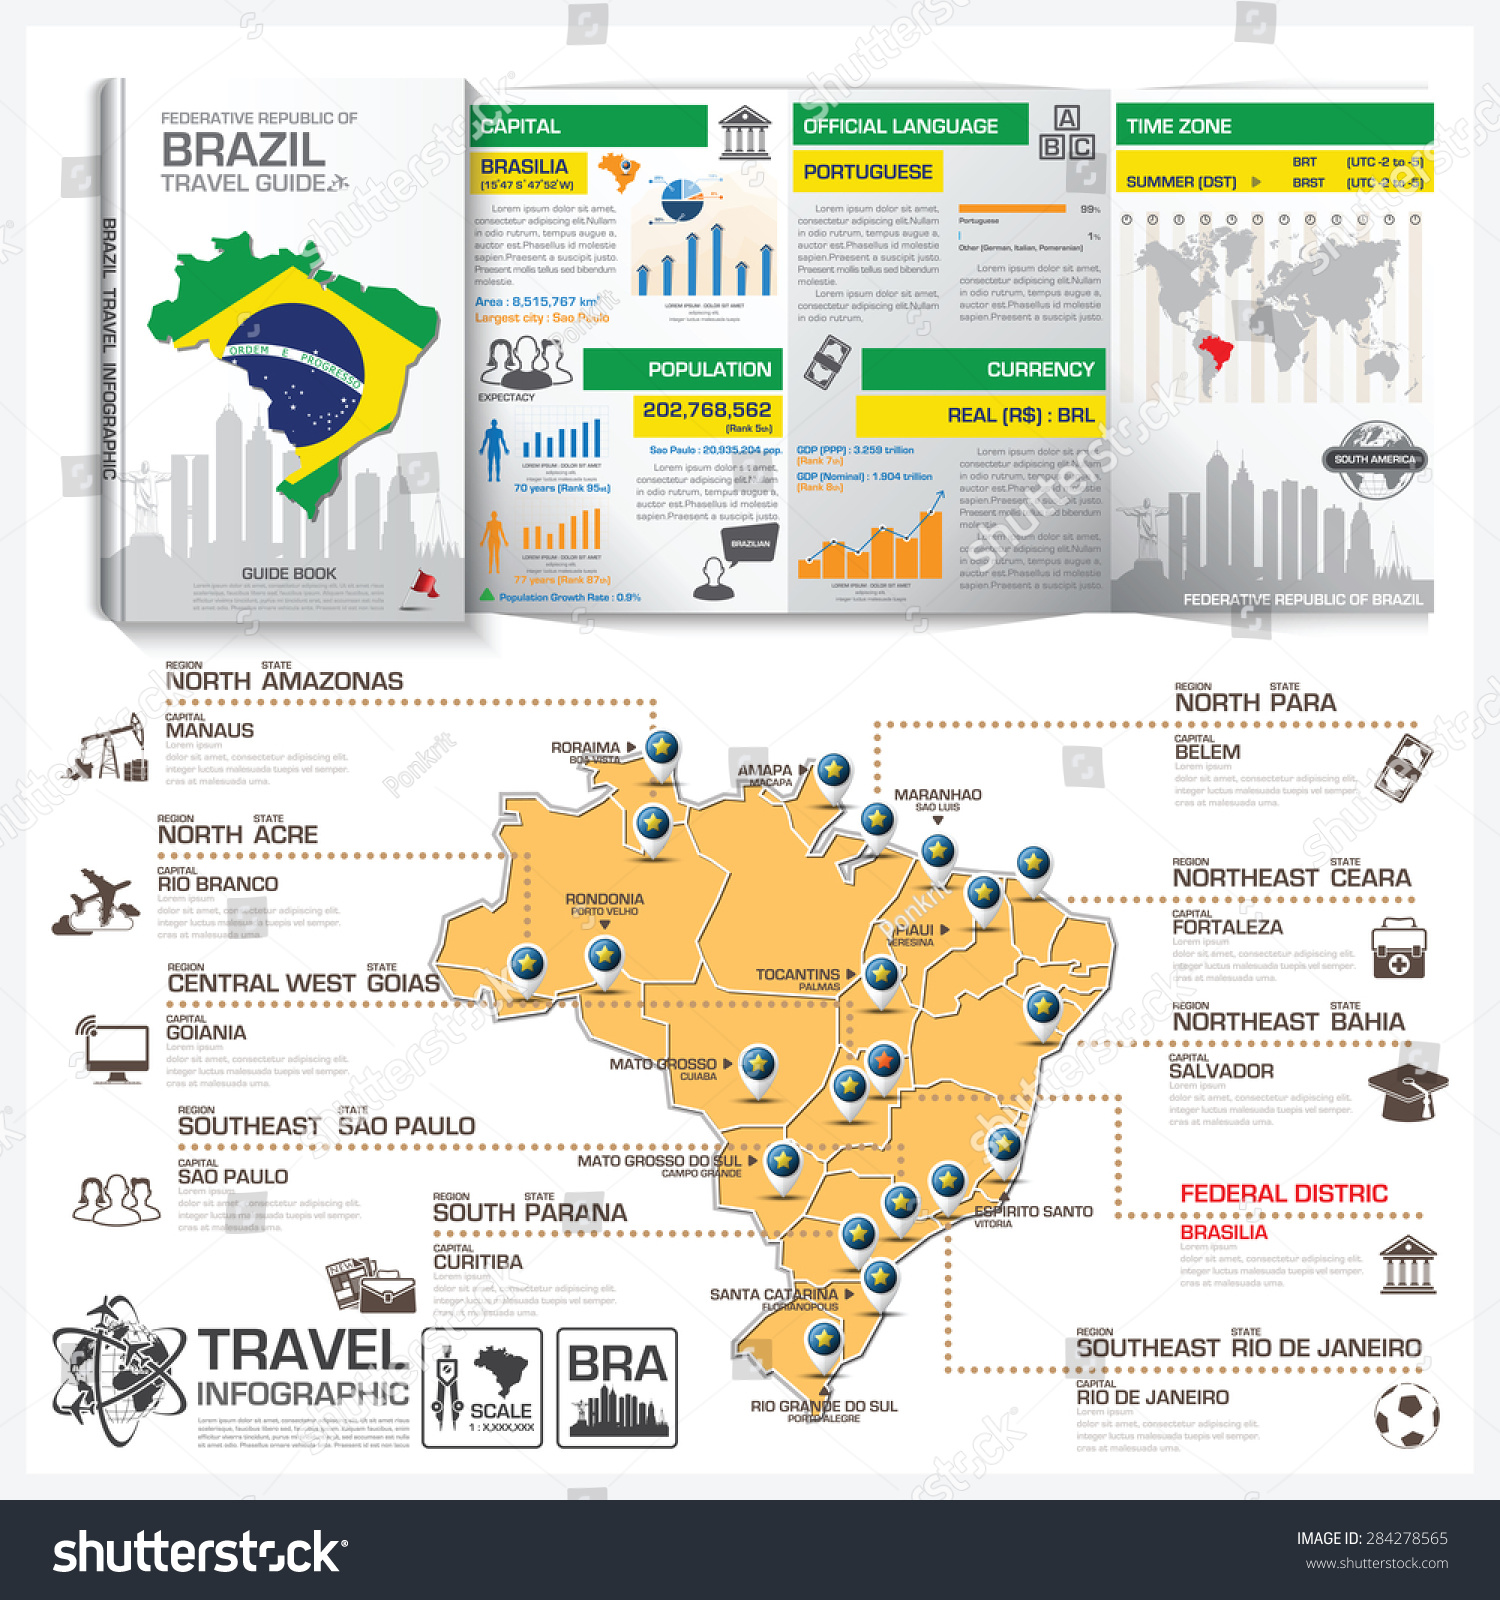 republic brazil travel guide book business stock vector royalty